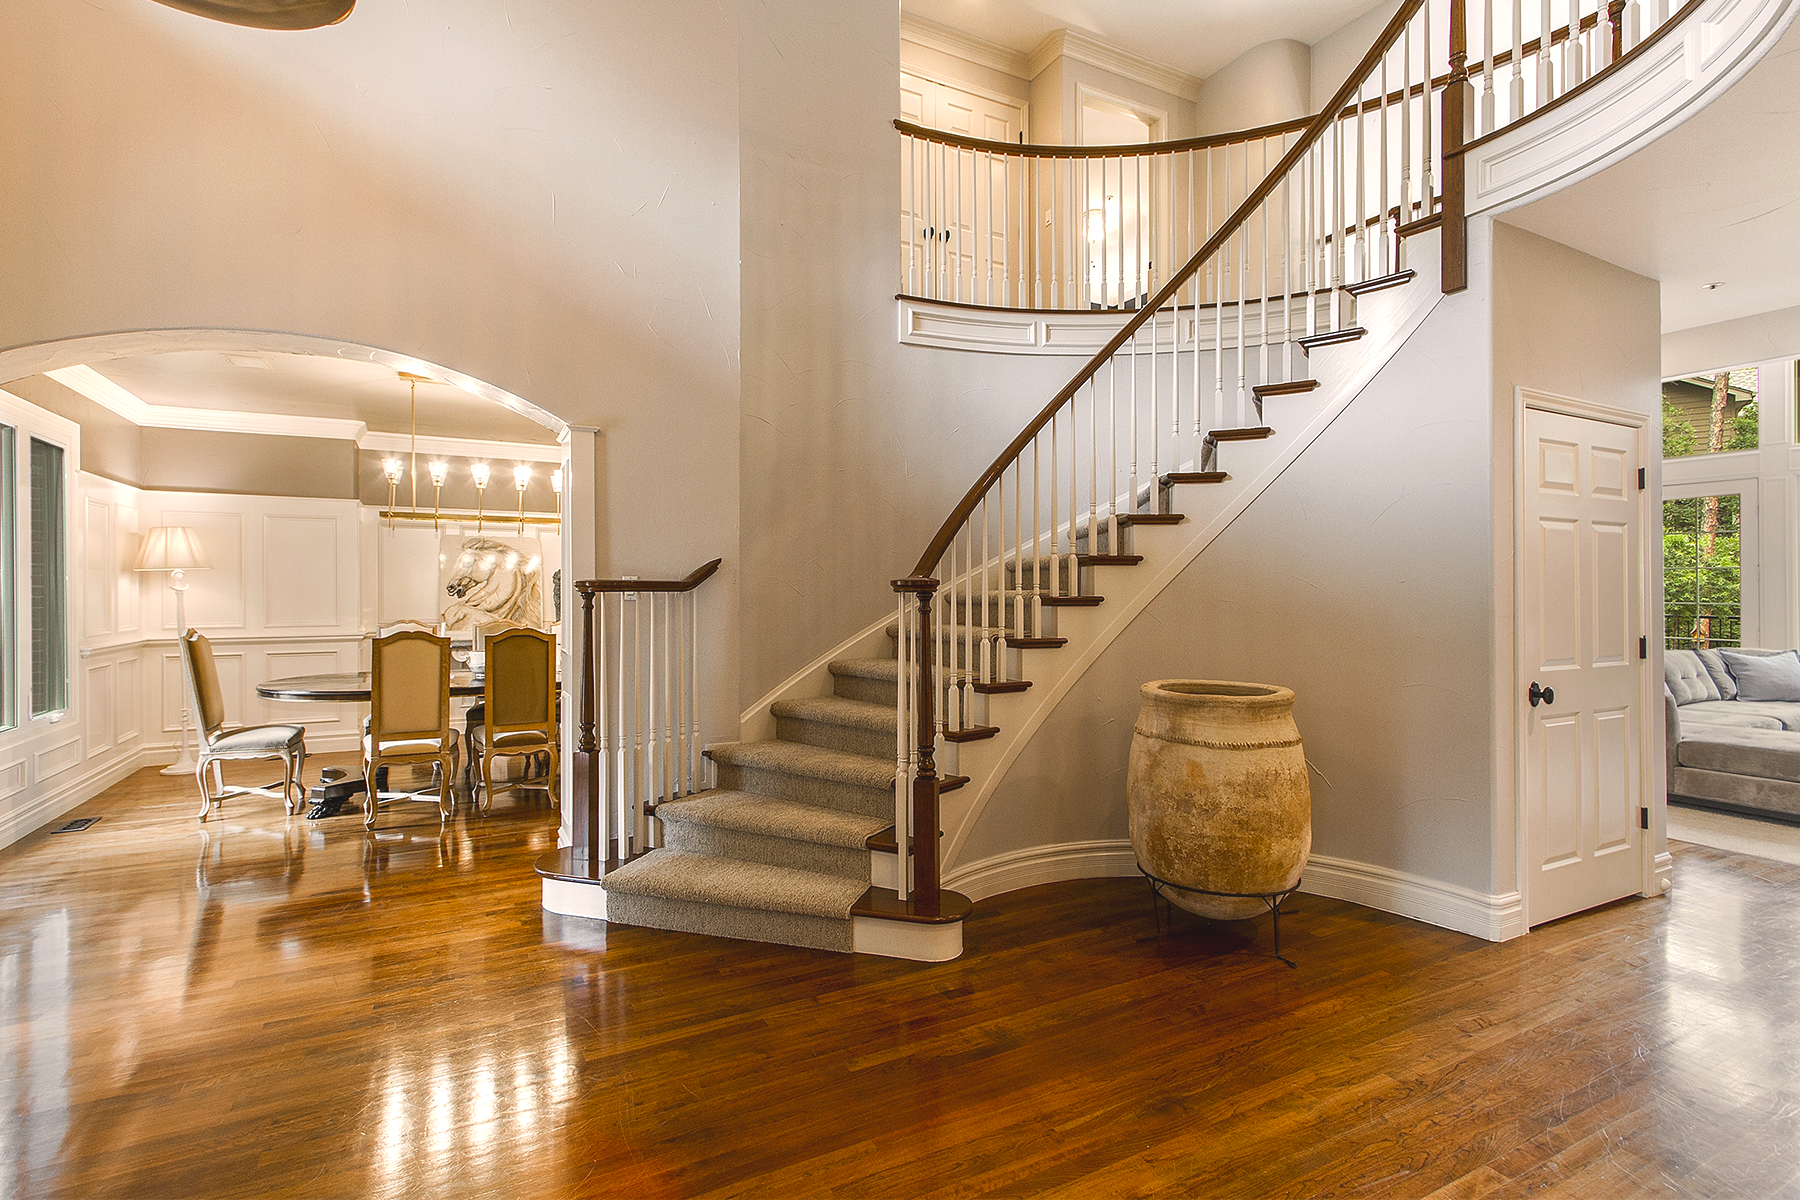 Staircase_1800x1200_2813116-edit.png